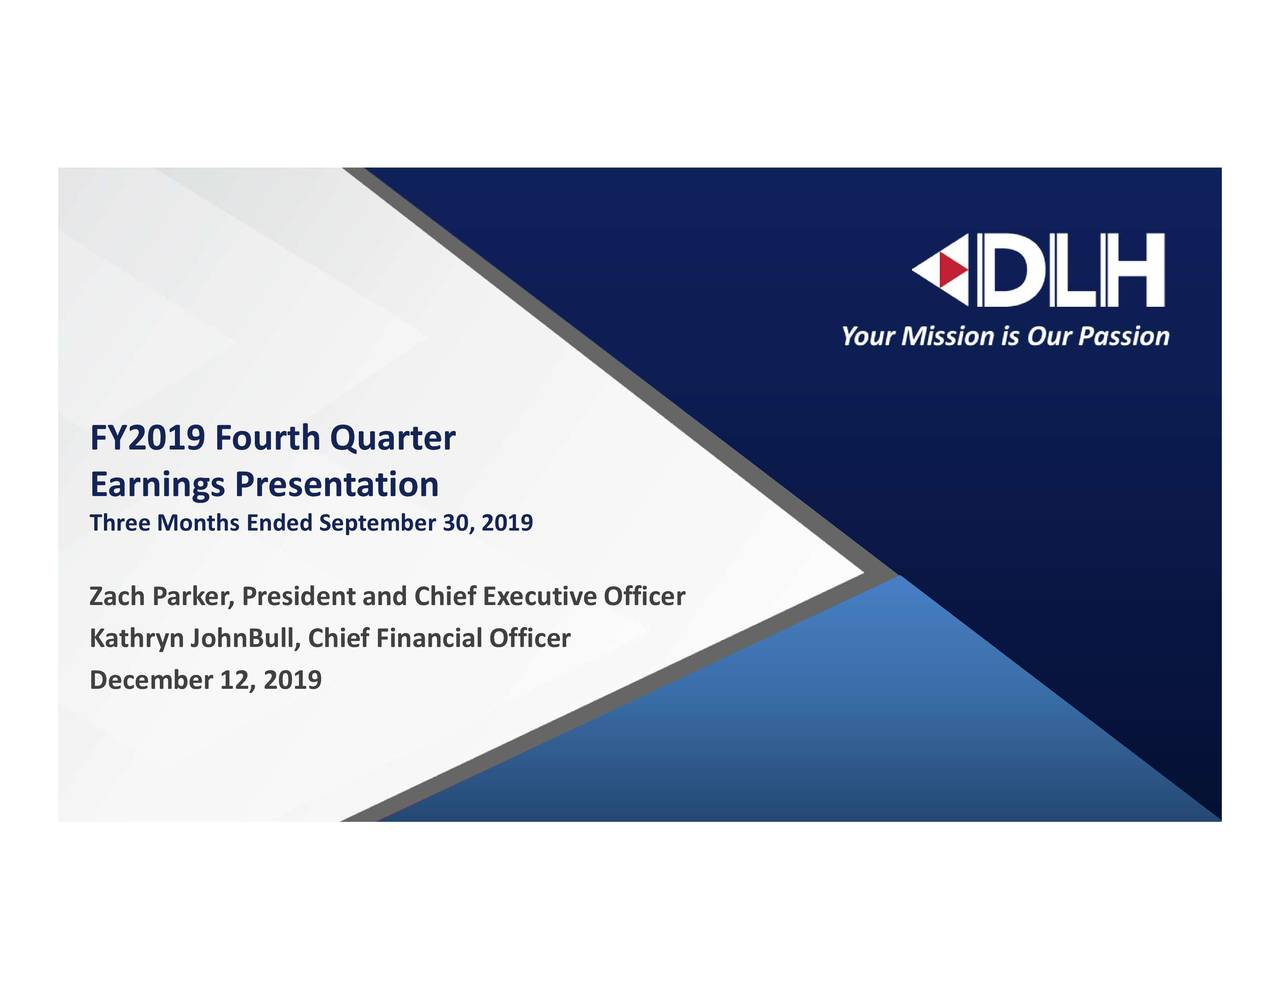 DLH Holdings Corp. 2019 Q4 - Results - Earnings Call Presentation - DLH Holdings Corp. (NASDAQ:DLHC) | Seeking Alpha